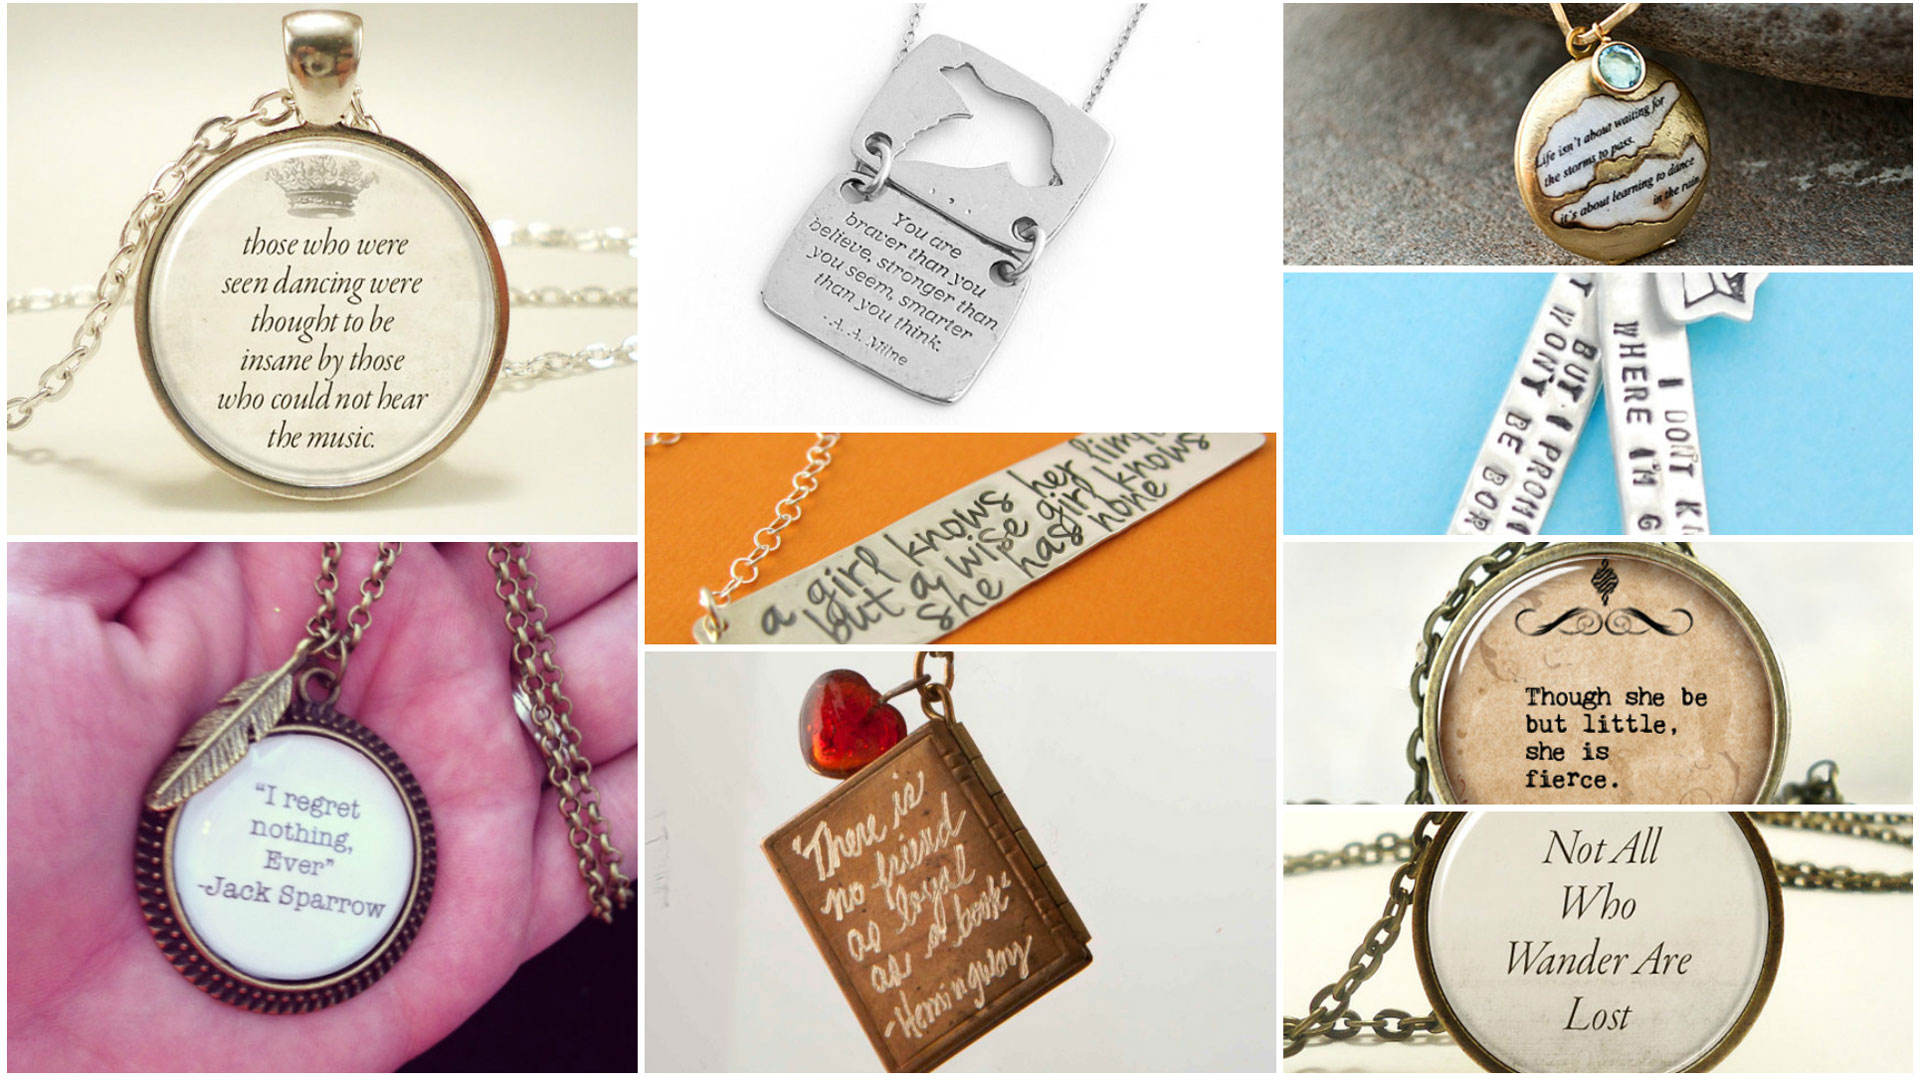 Necklace collage